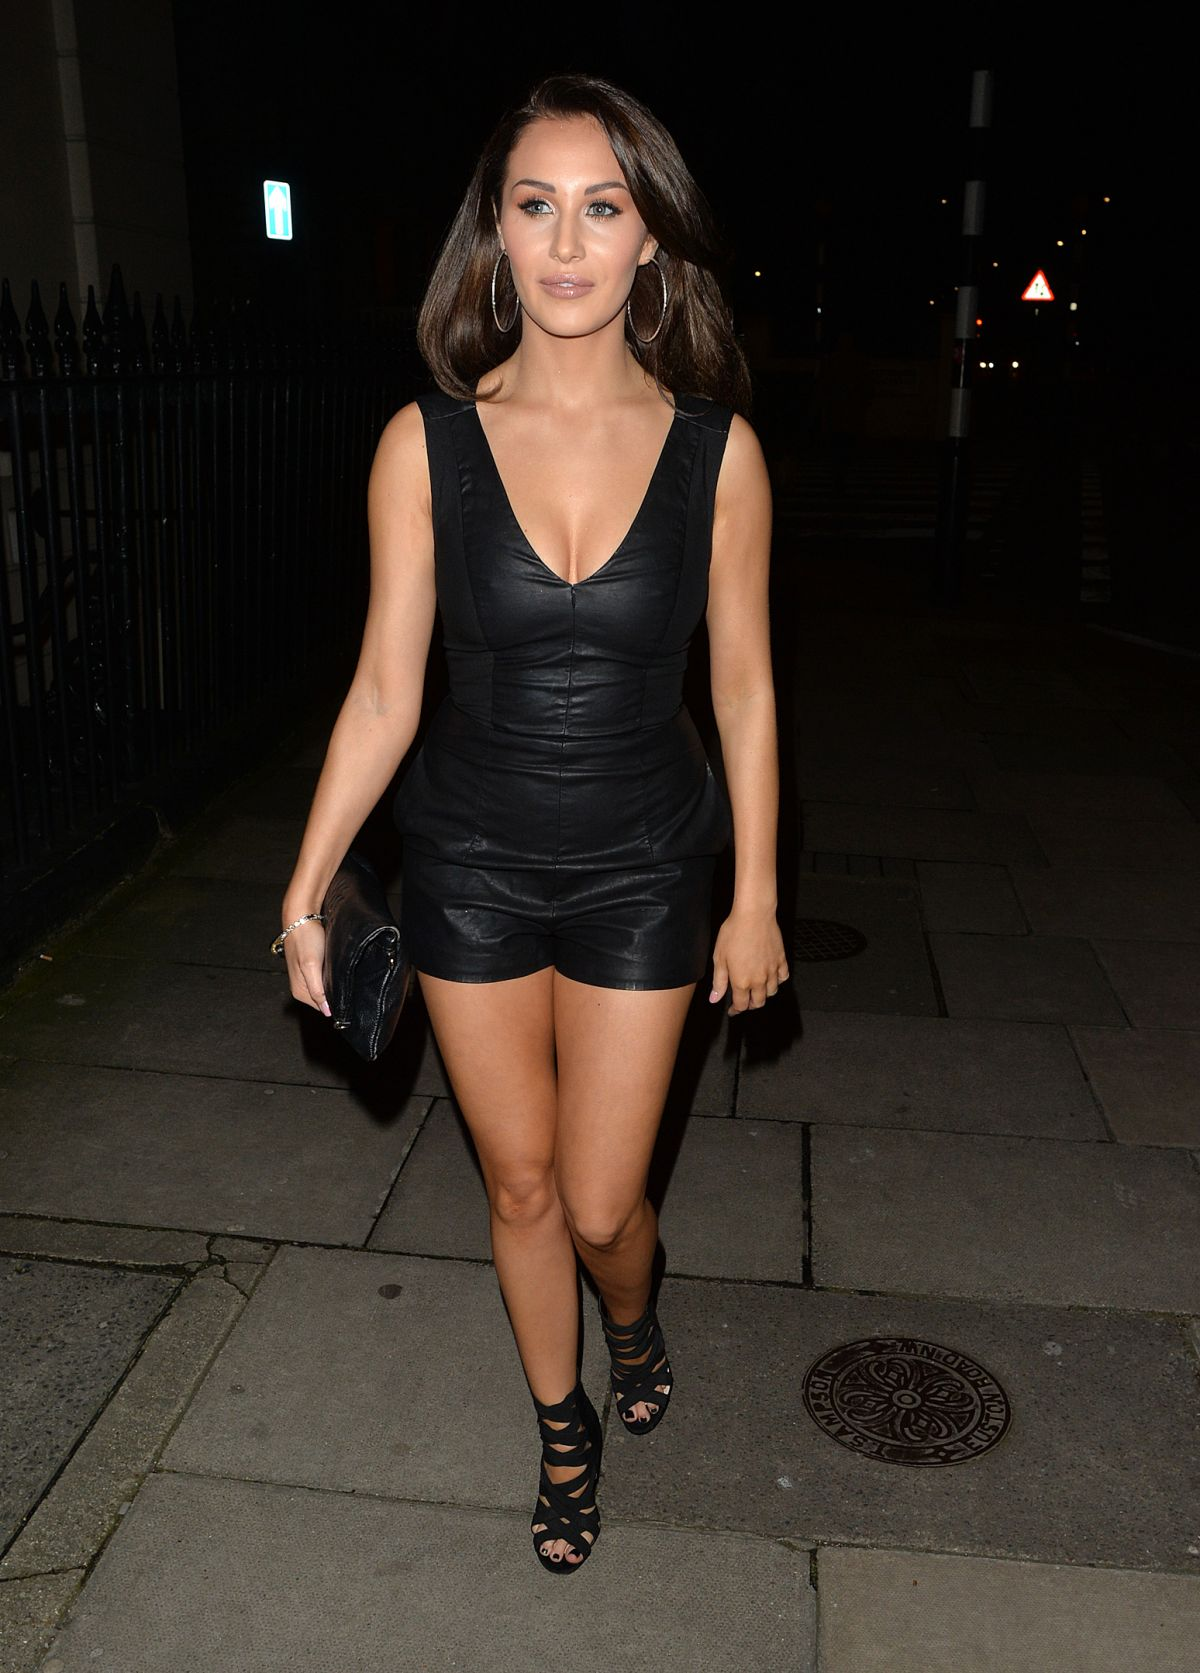 Marnie Simpson, Chloe & Lauryn Goodman Seen At Hard Rock ...